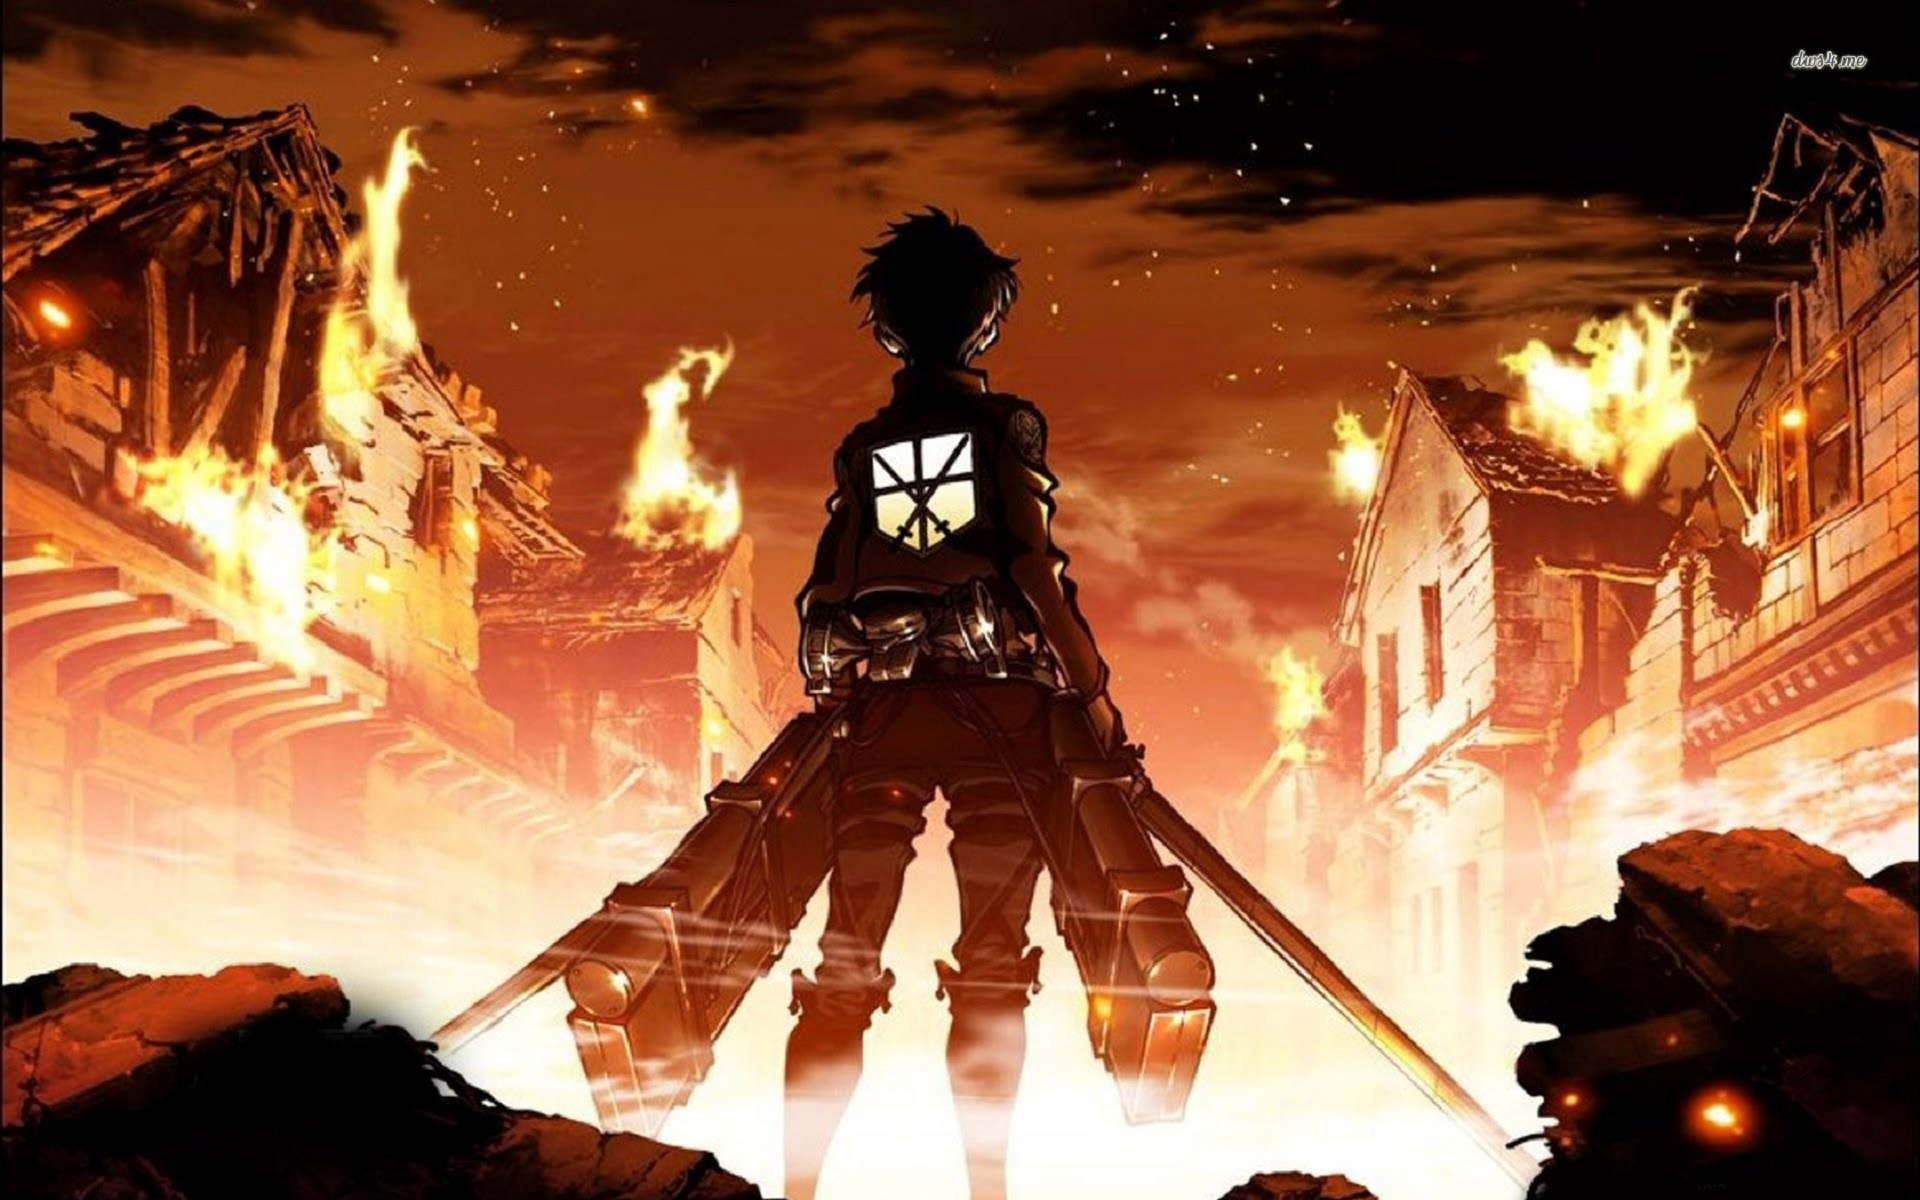 Attack on Titan Wallpapers Pack: Amazon.de: Apps für Android